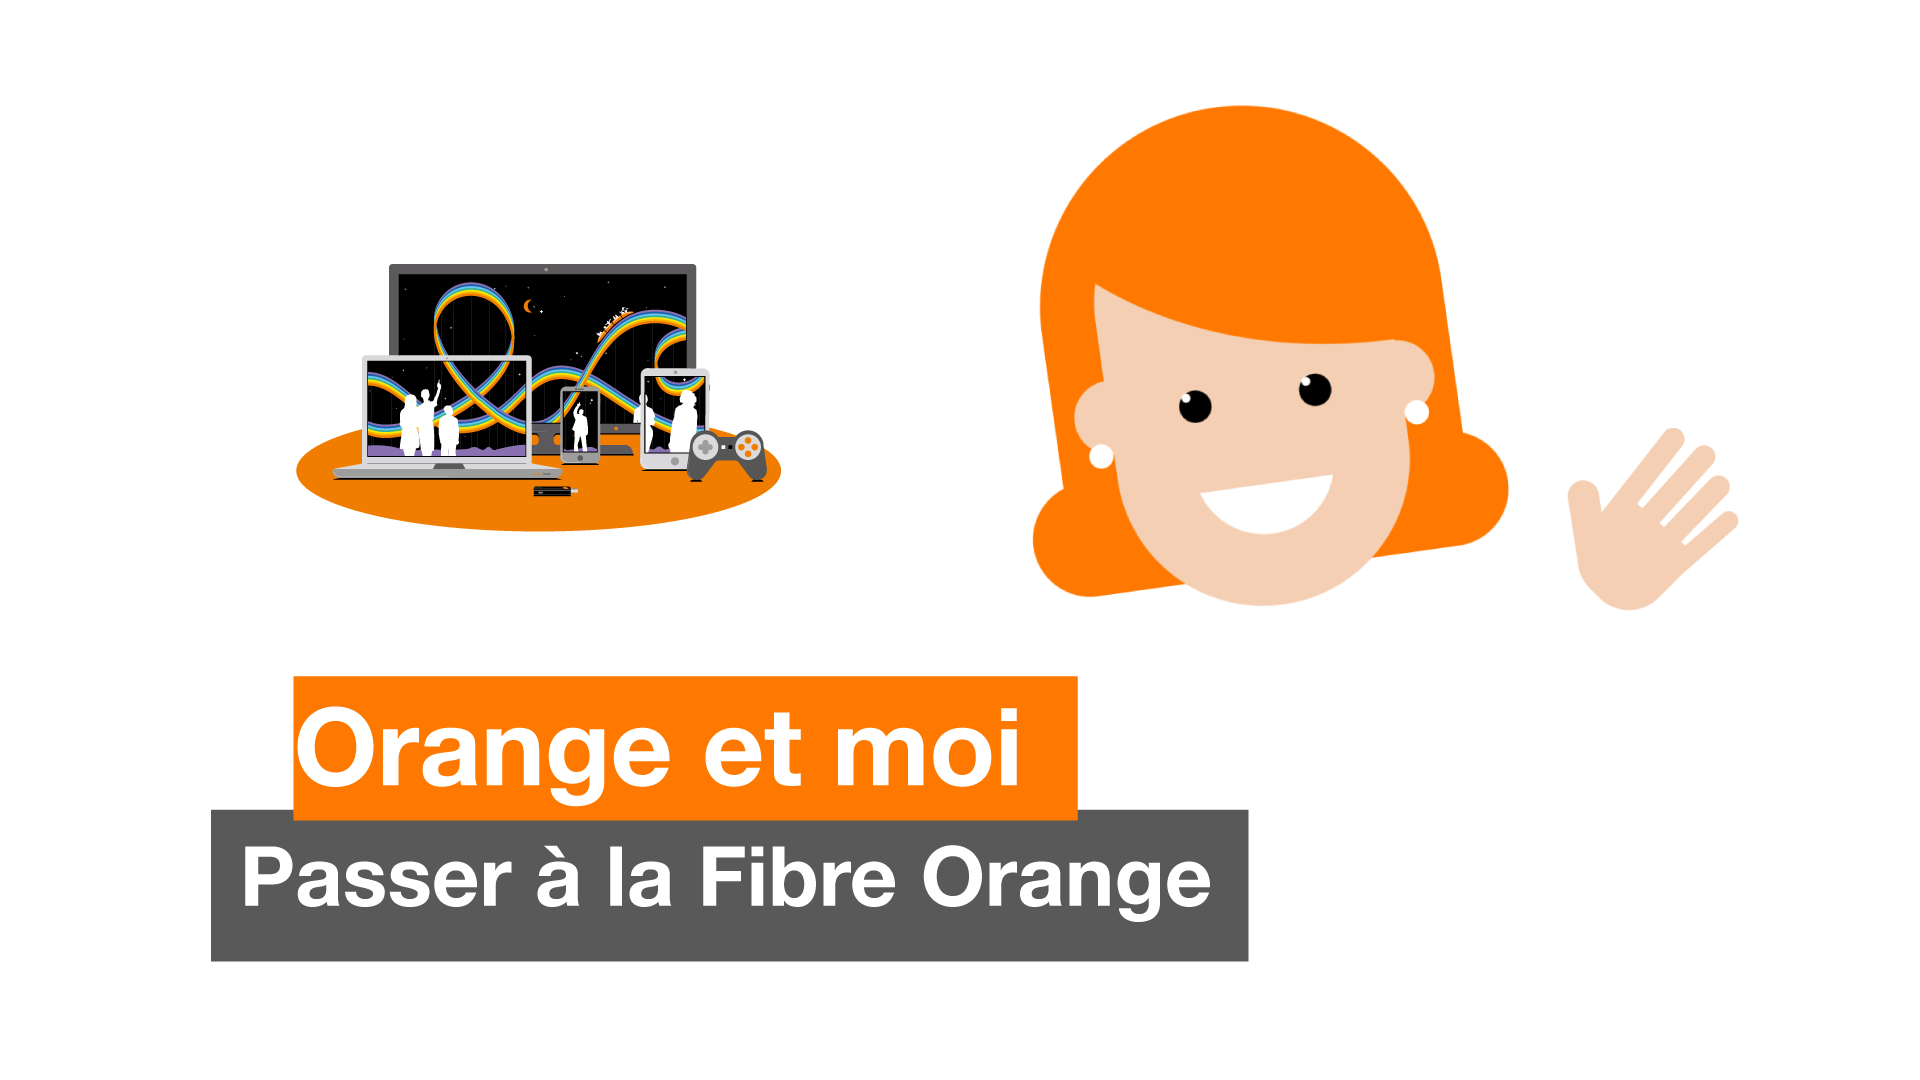 Choisir la Fibre Orange